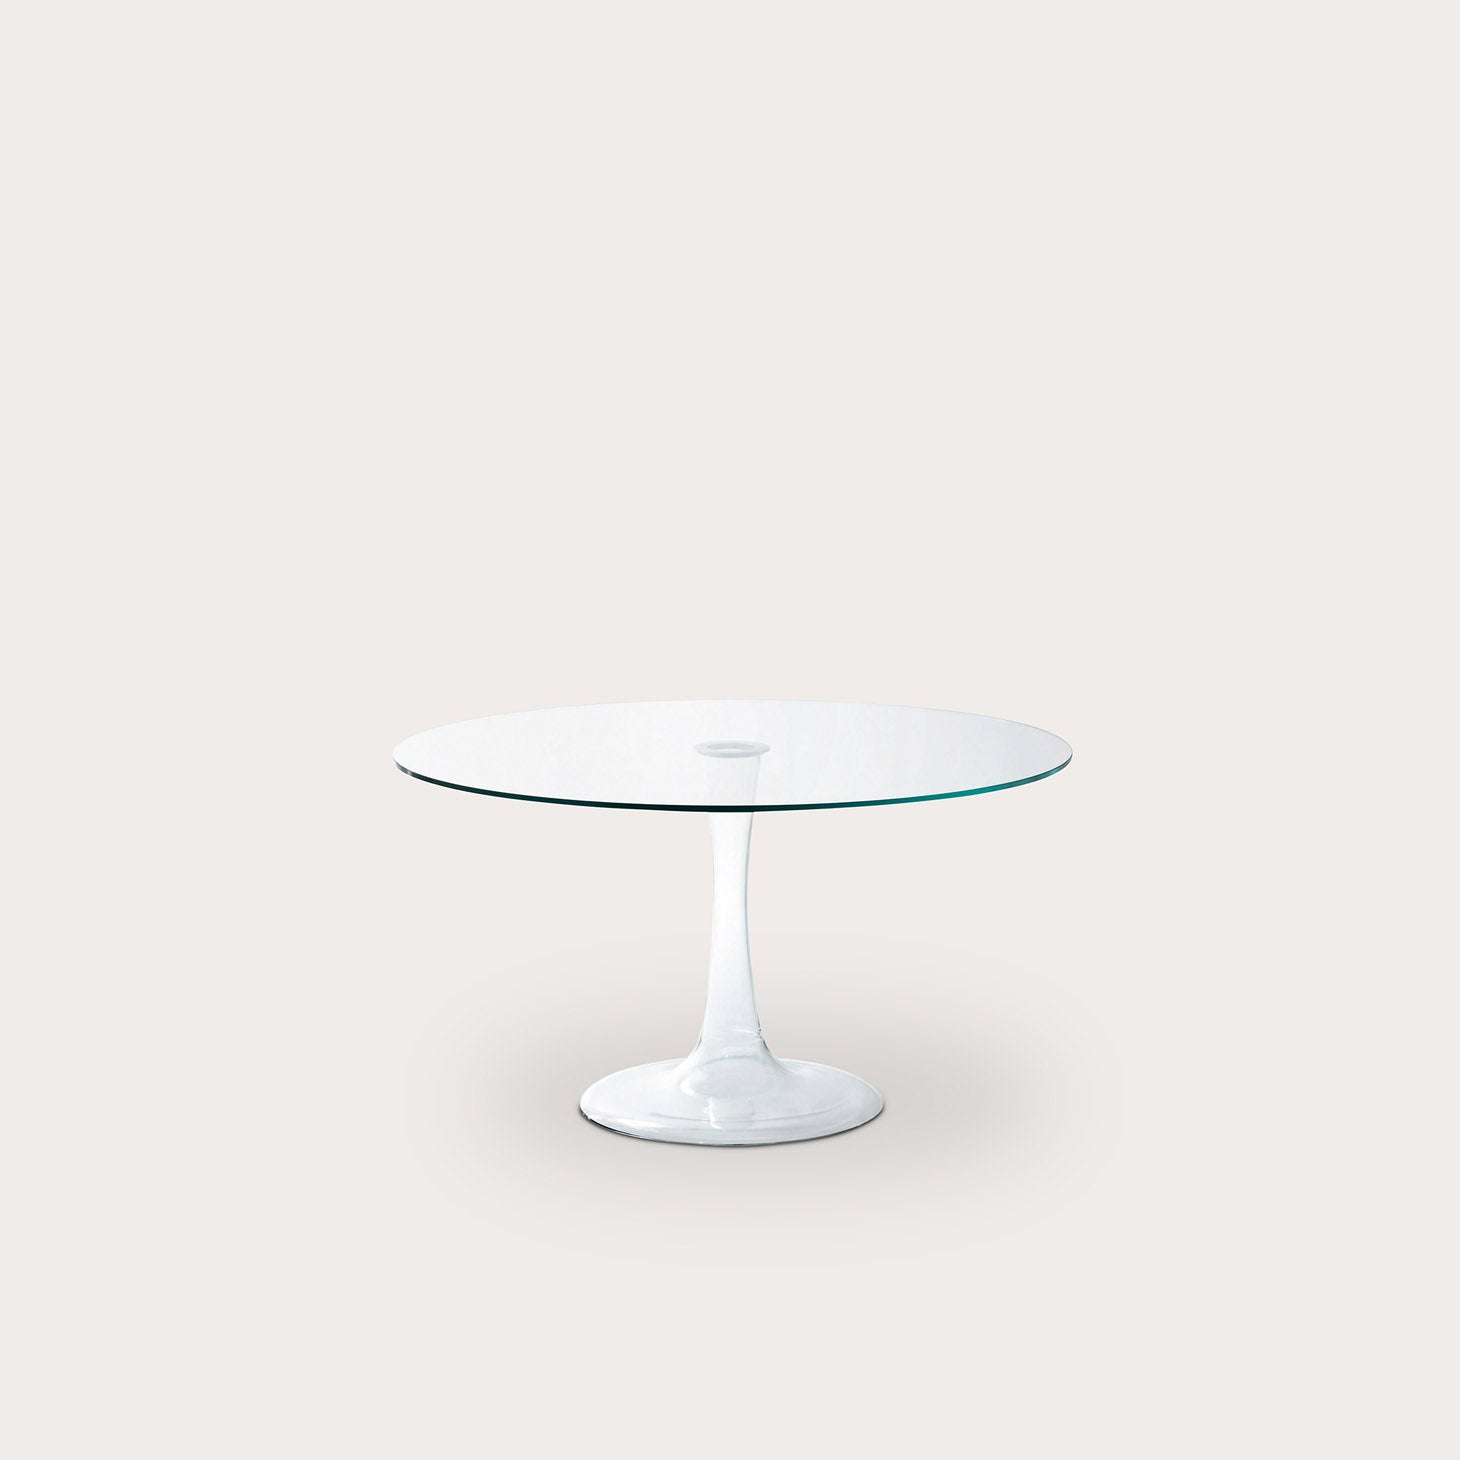 Funghetti Tables Piero Lissoni Designer Furniture Sku: 288-230-10210